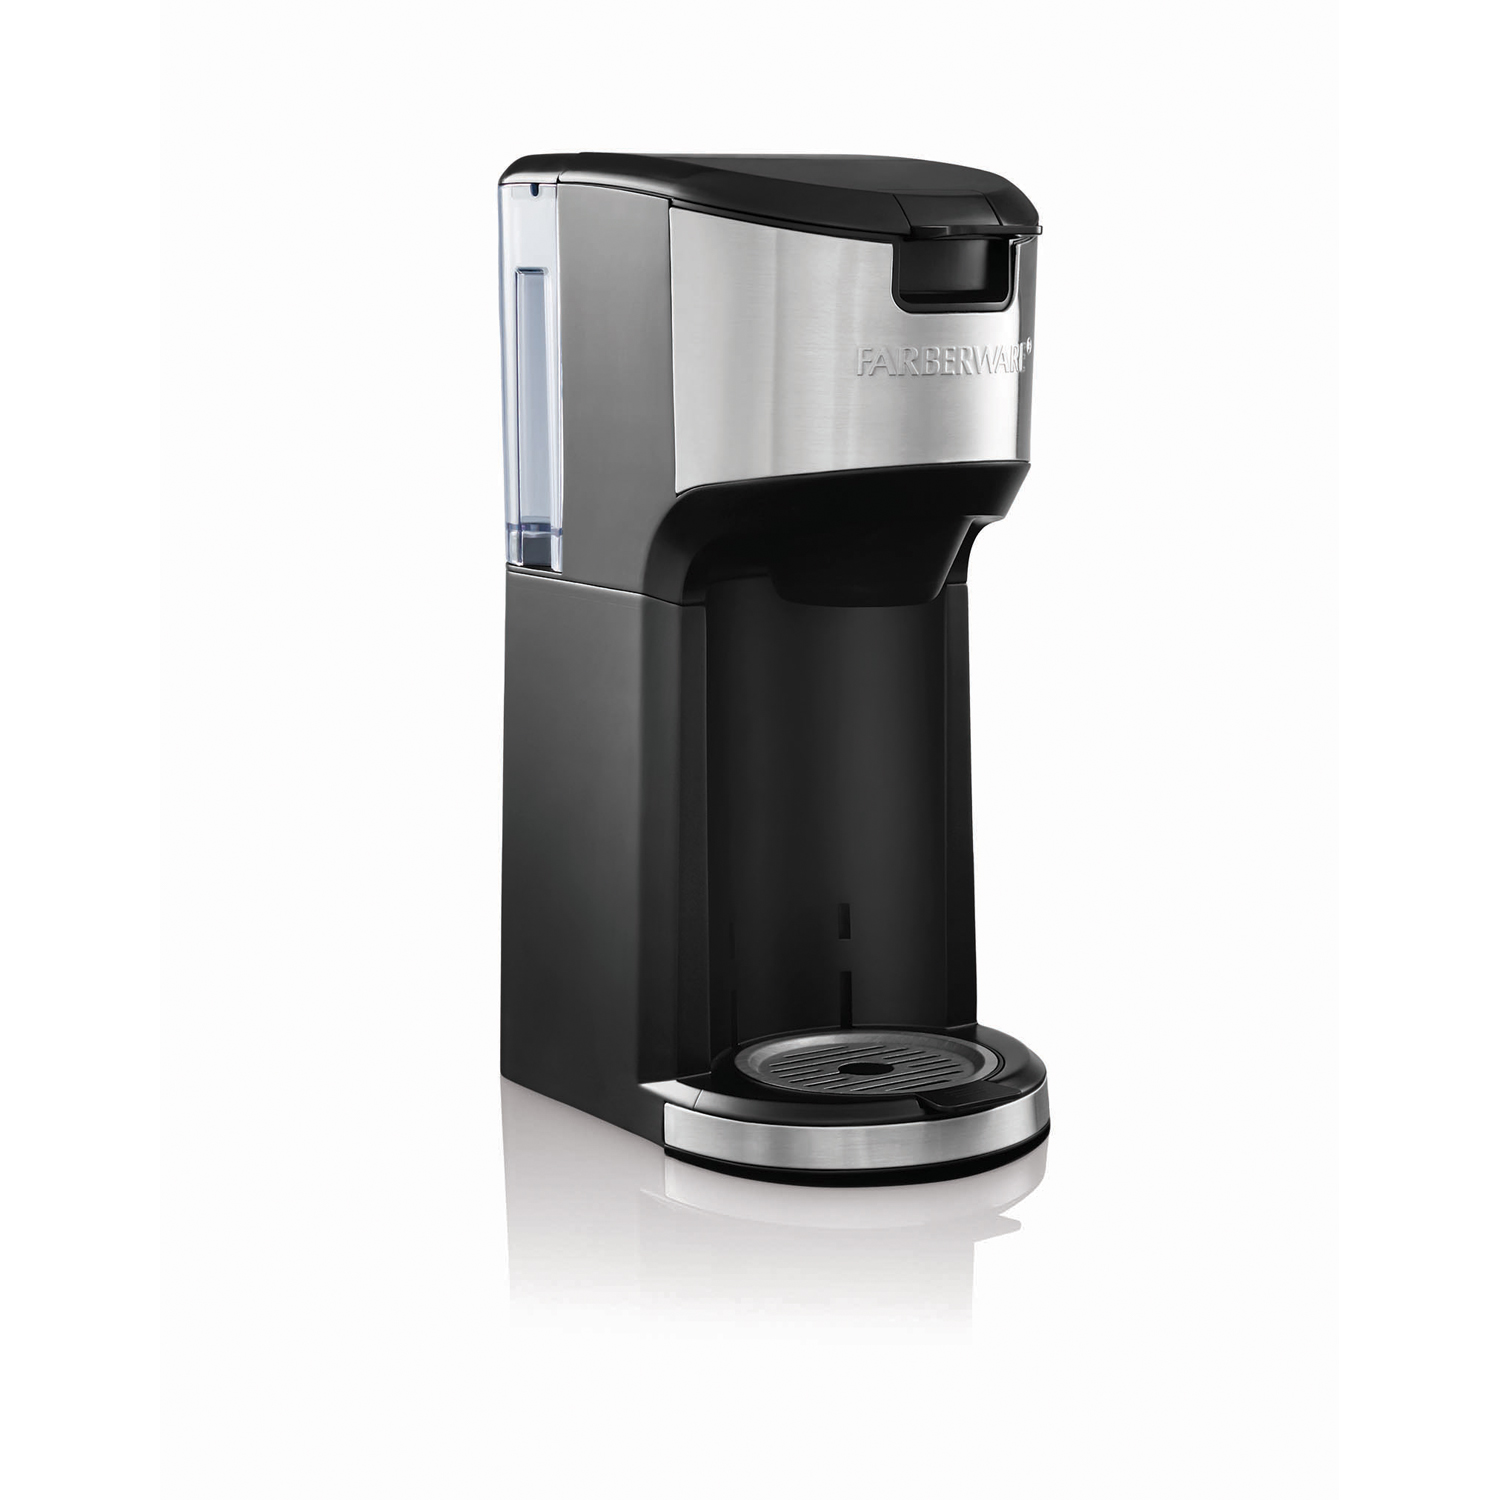 FARBERWARE SINGLE SERVE K Cup and Brew COFFEE MAKER Stainless and